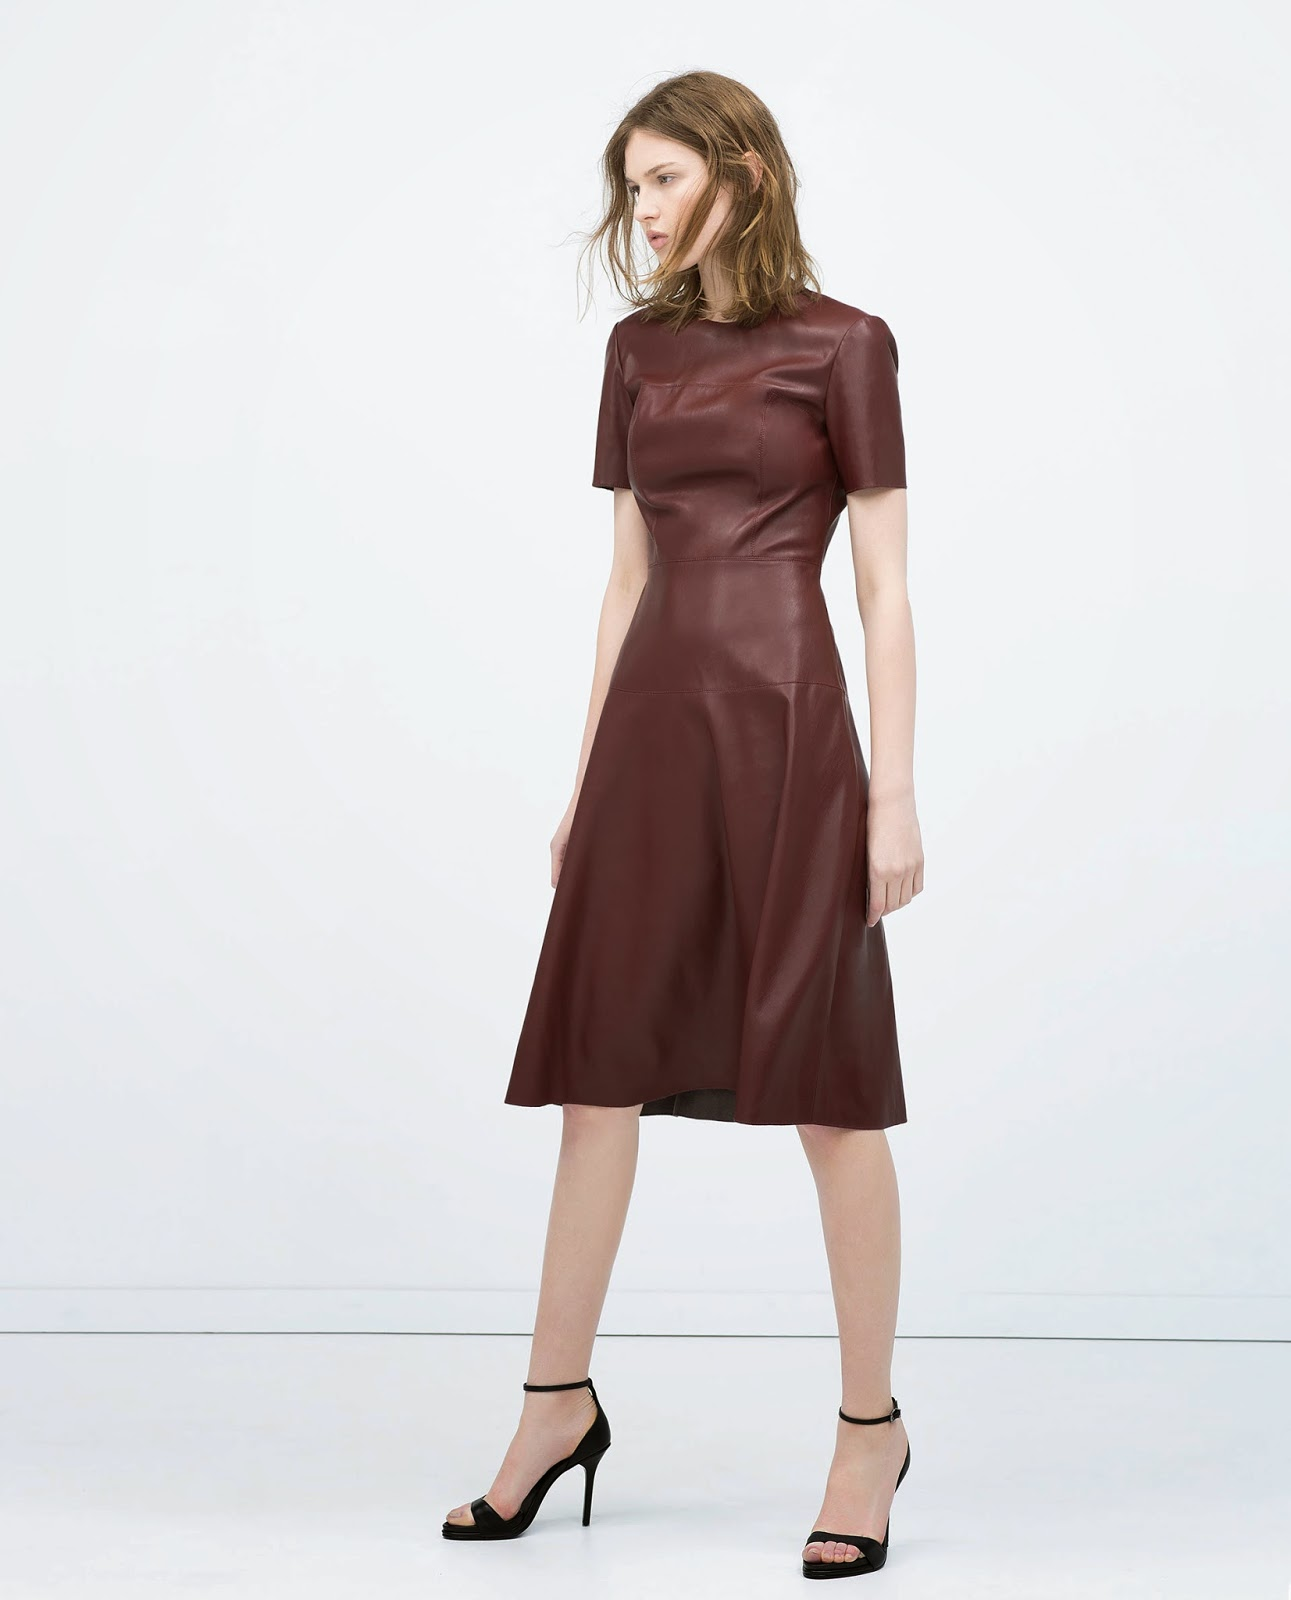 zara burgundy dress, zara leather dress,